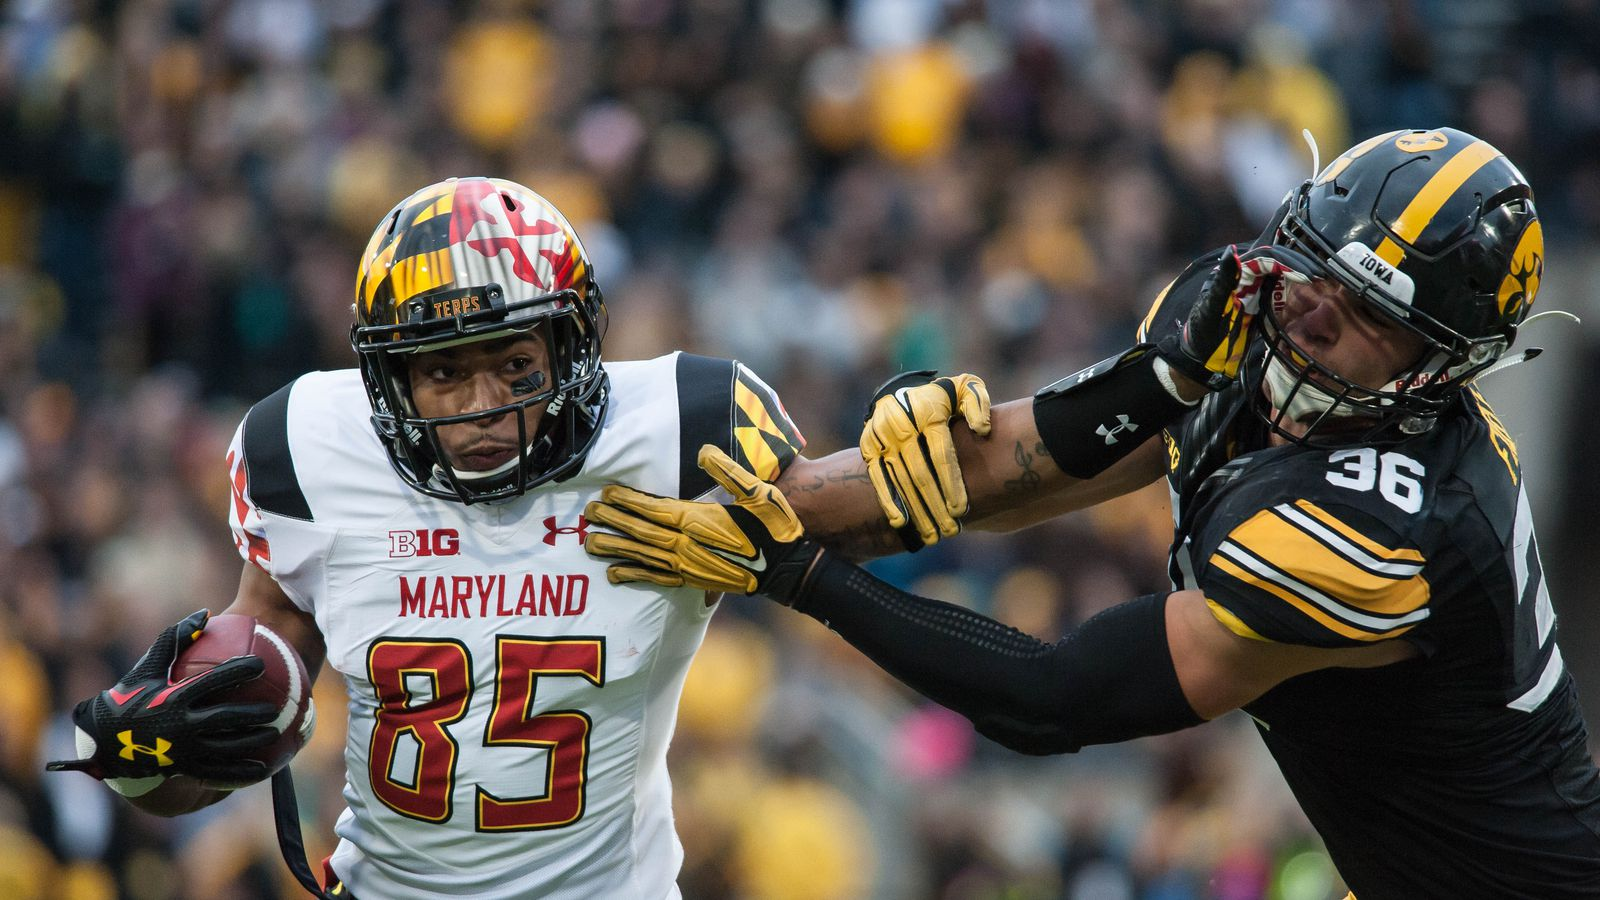 Pin By Md Minhajul Mamun On Soccer Players: Maryland Football WR Jahrvis Davenport Has Room (and A